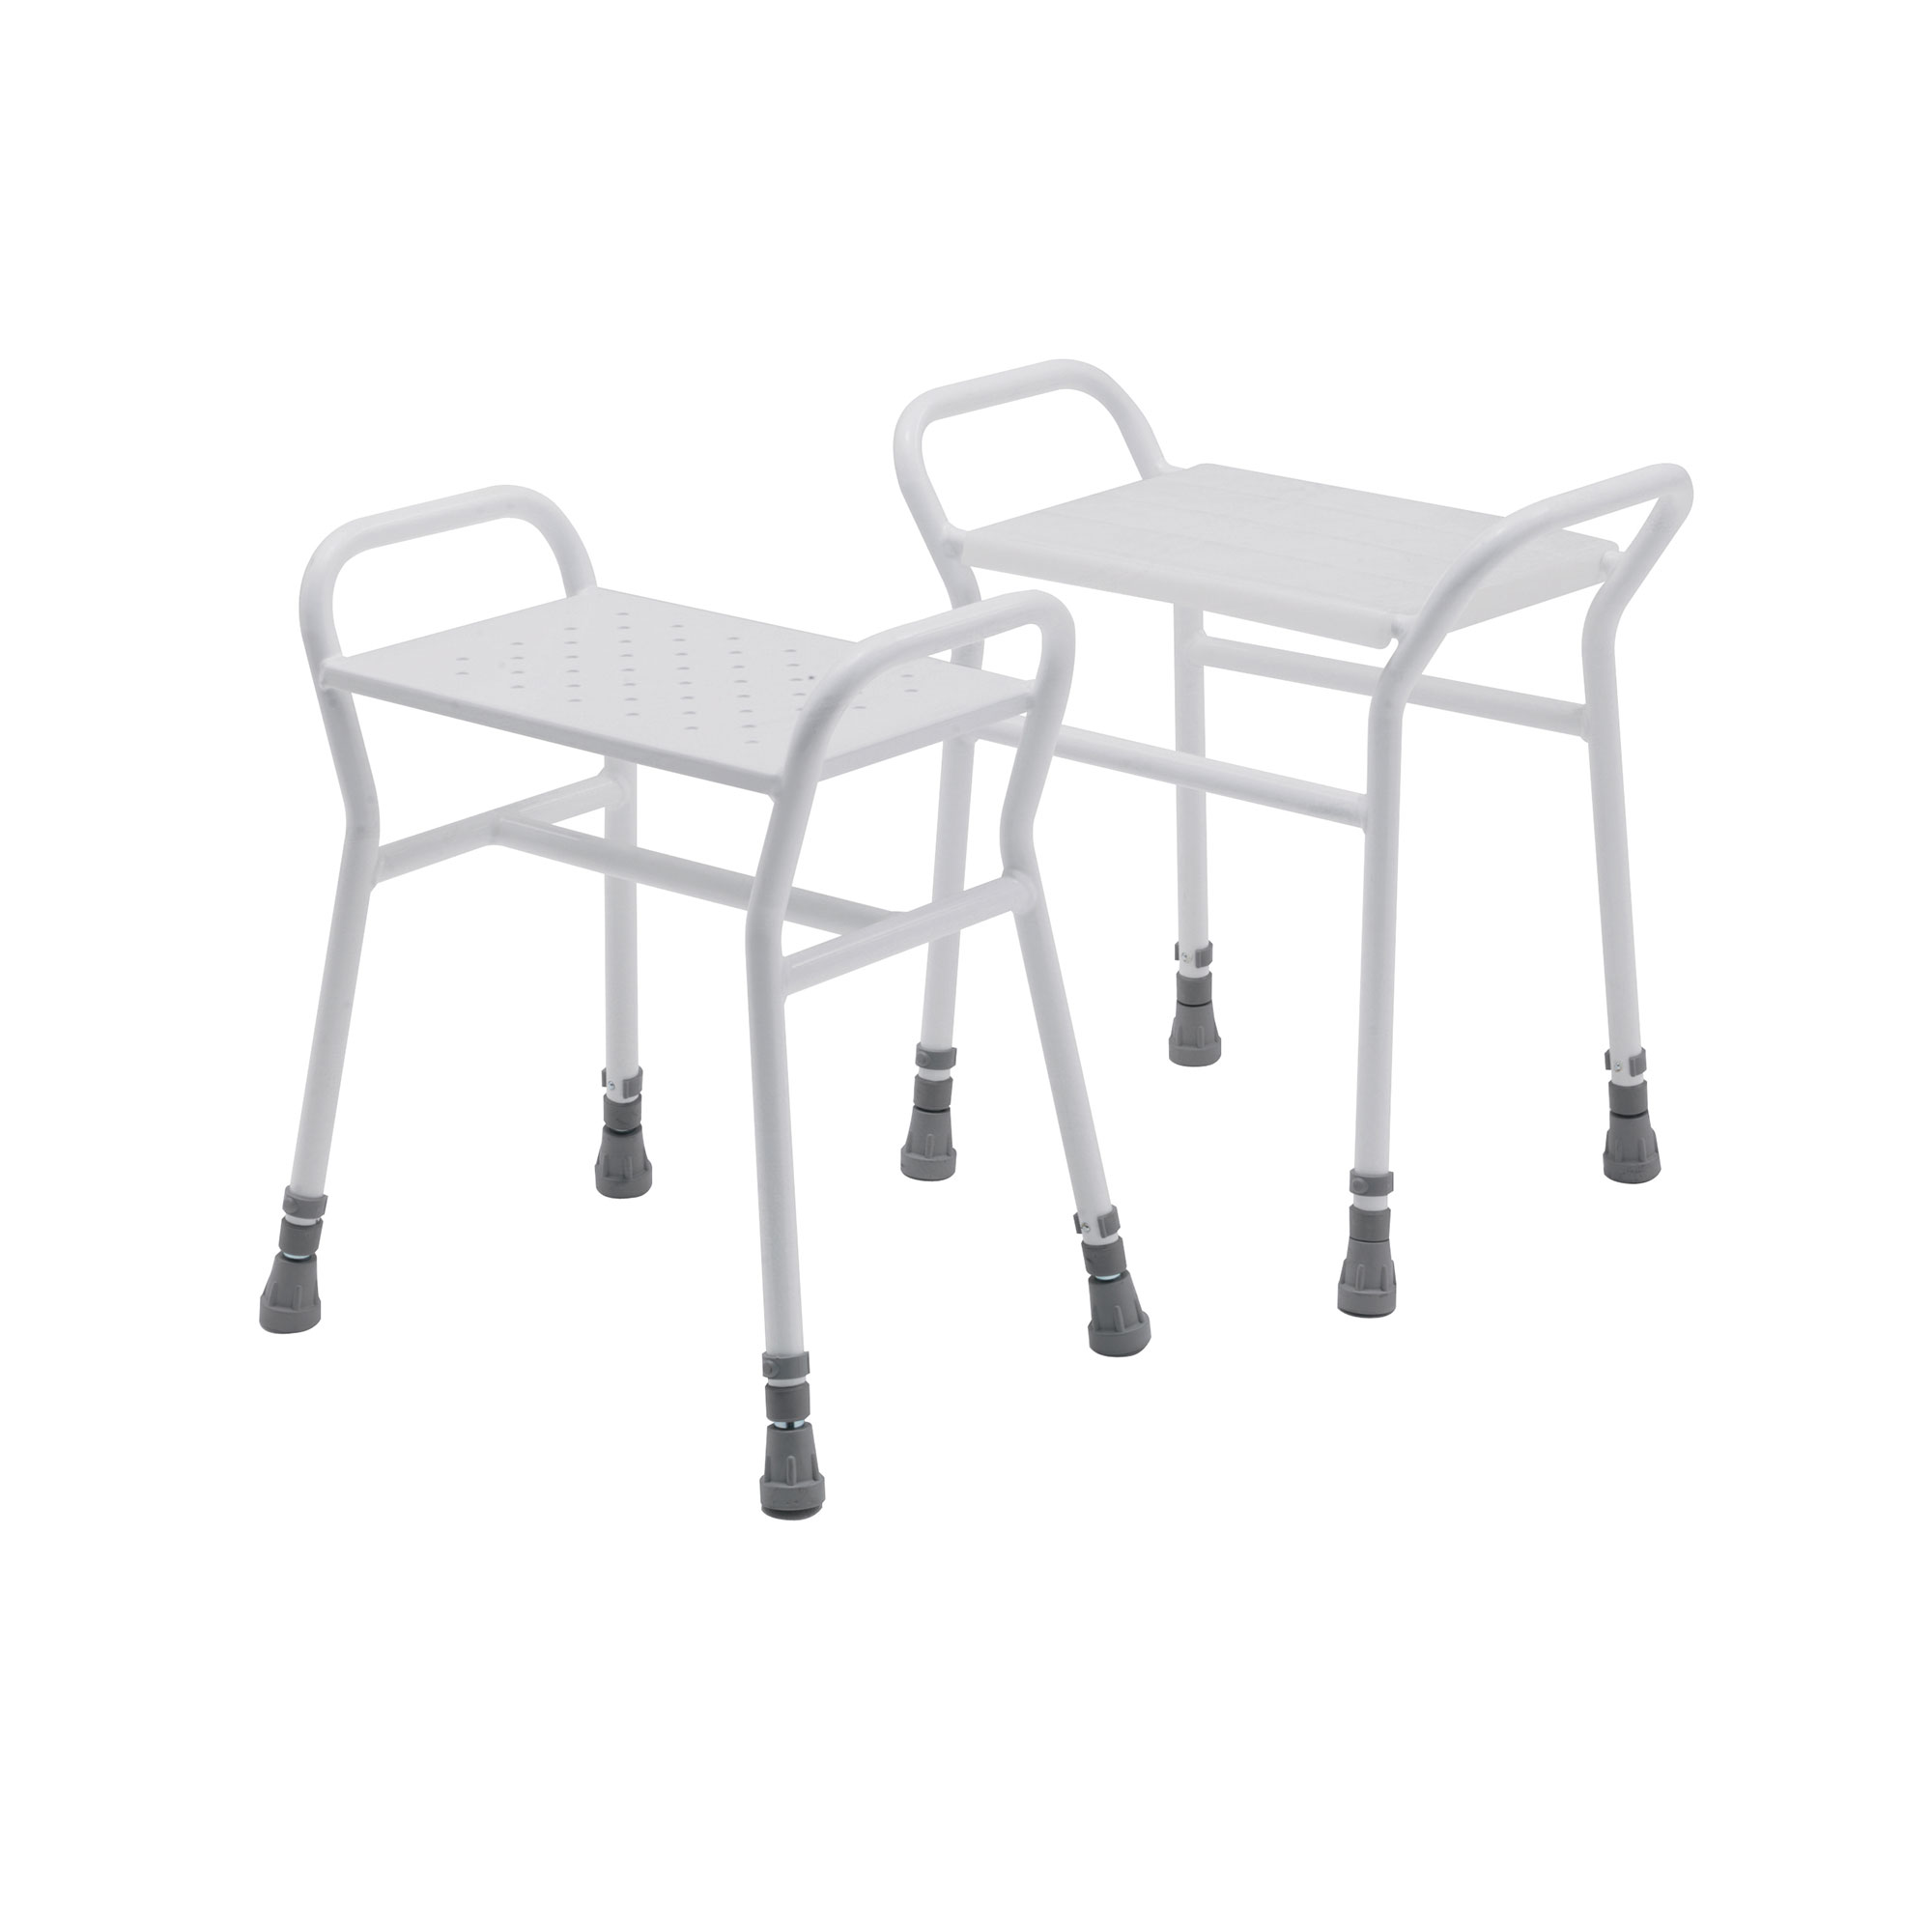 4216P : Belmont Adjustable Shower Stool with a Plastic Clip On Seat ...